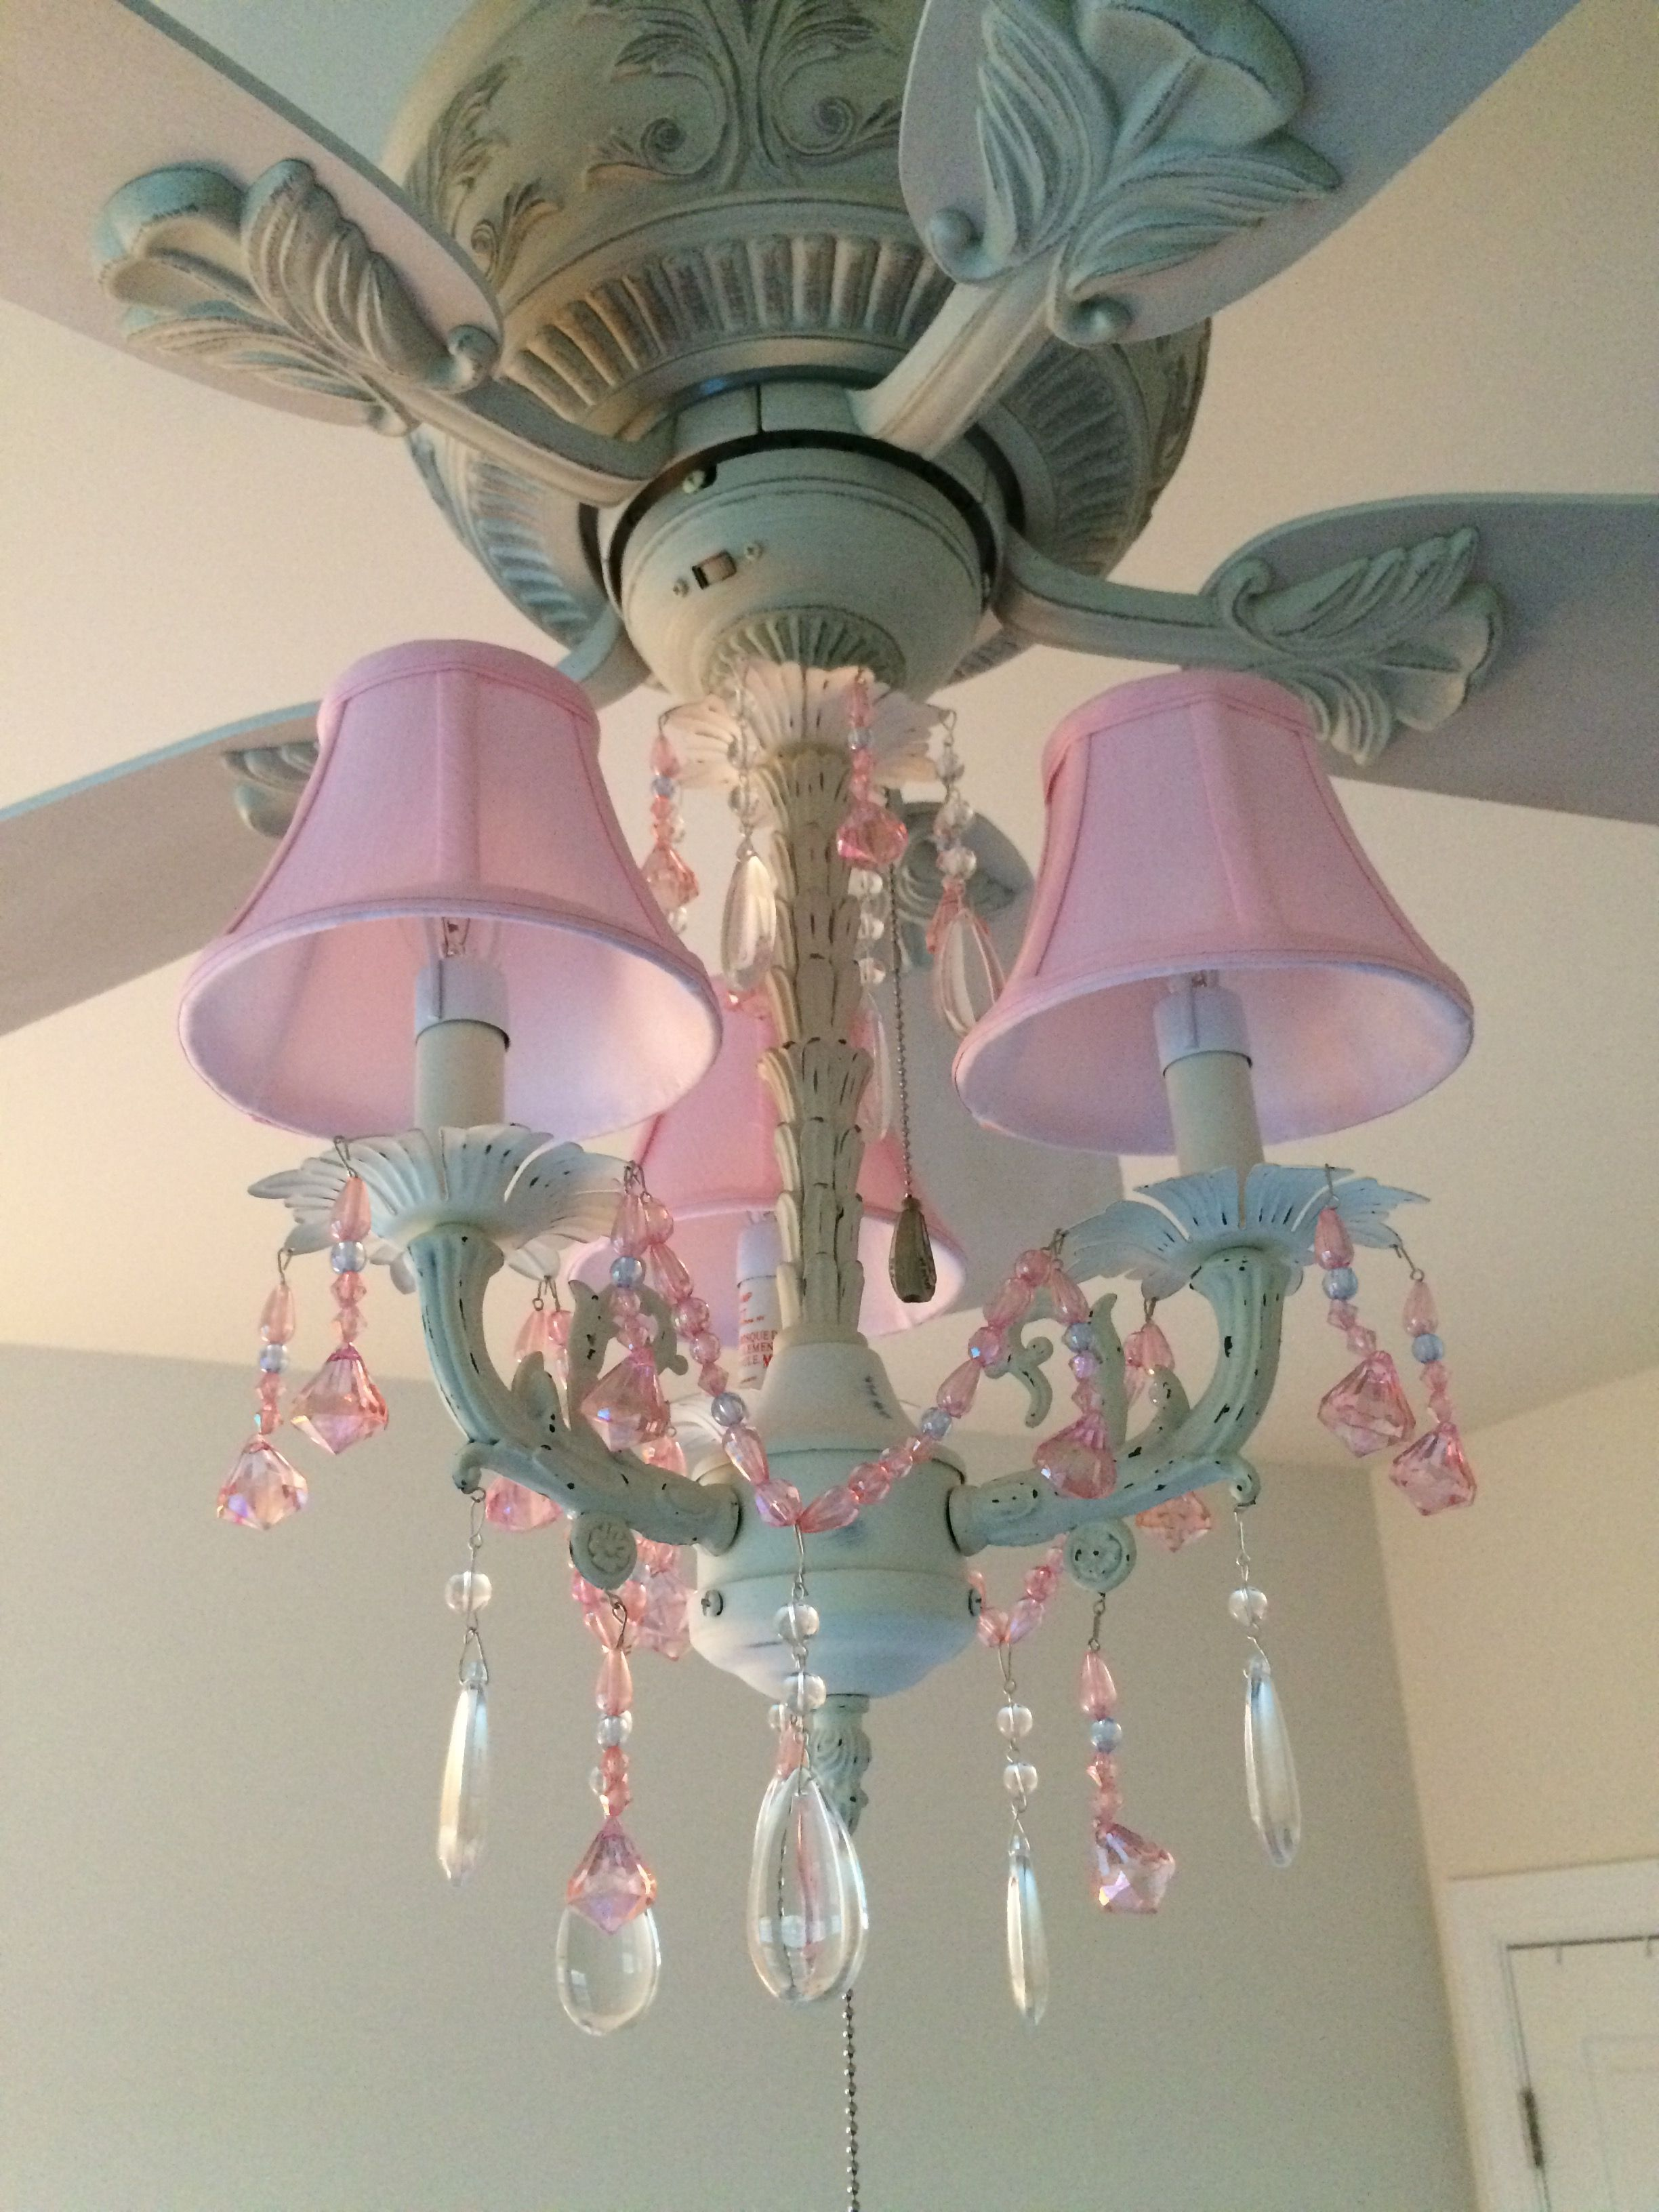 Pink chandelier ceiling fan and light kit fandelier perfect for pink chandelier ceiling fan and light kit fandelier perfect for my little girls arubaitofo Choice Image